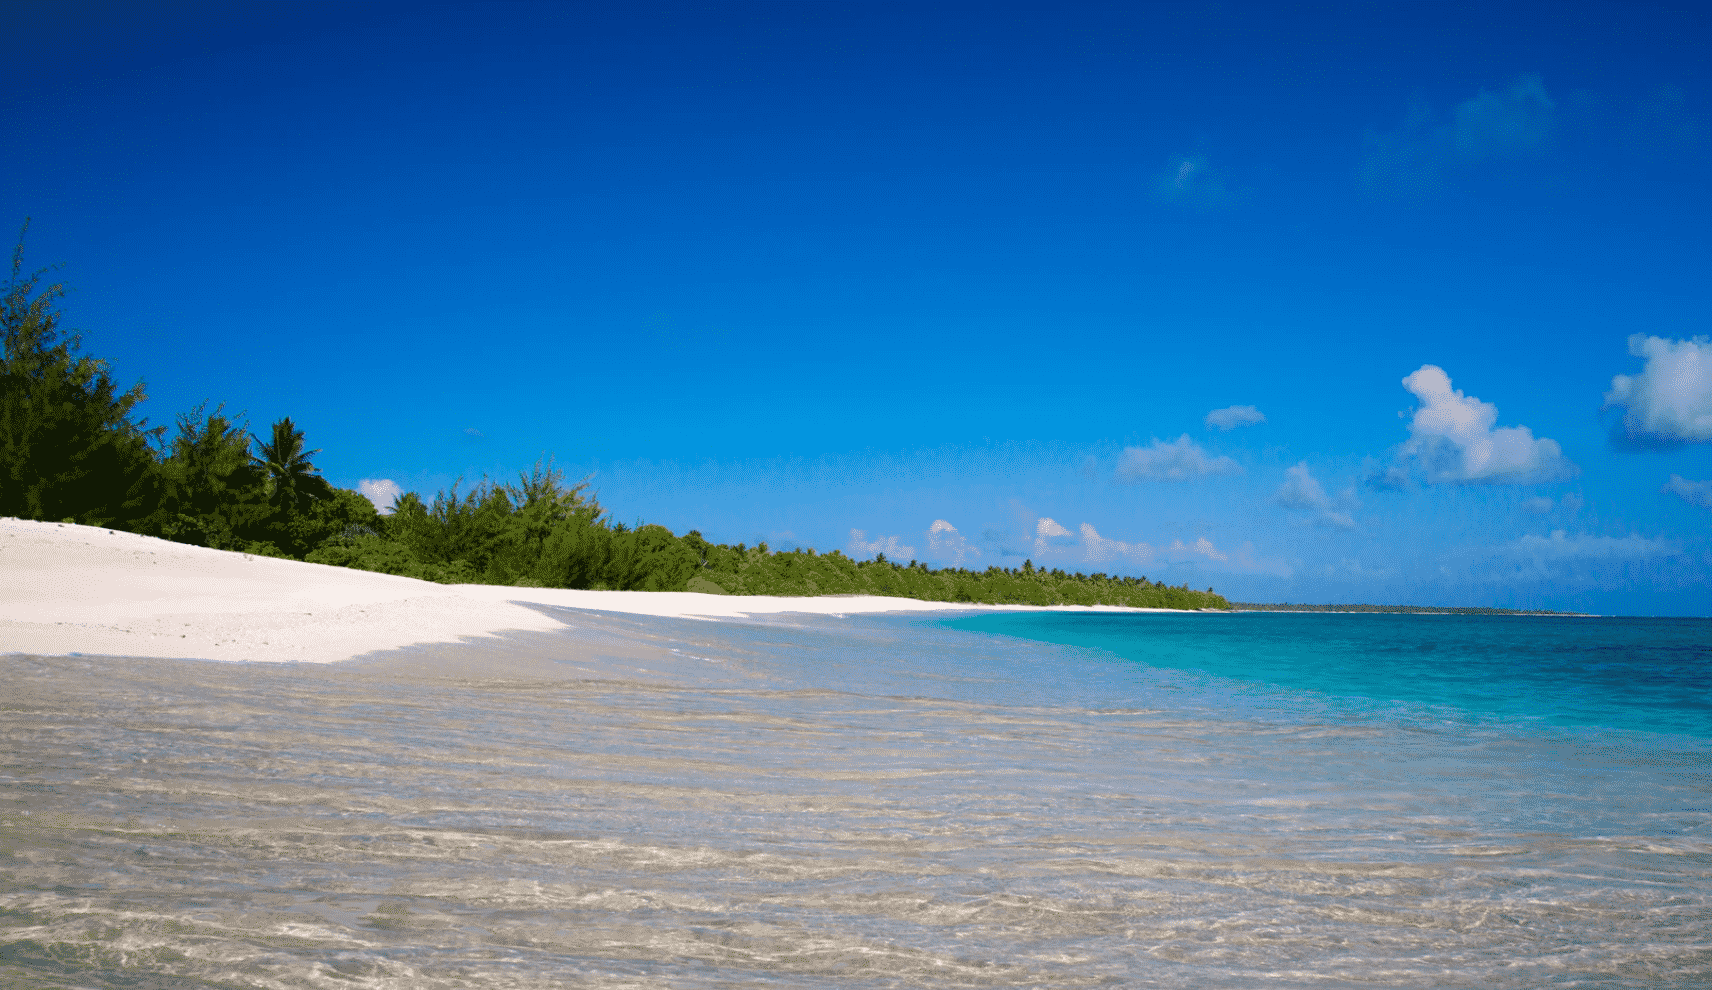 Things to do in Marshall Islands